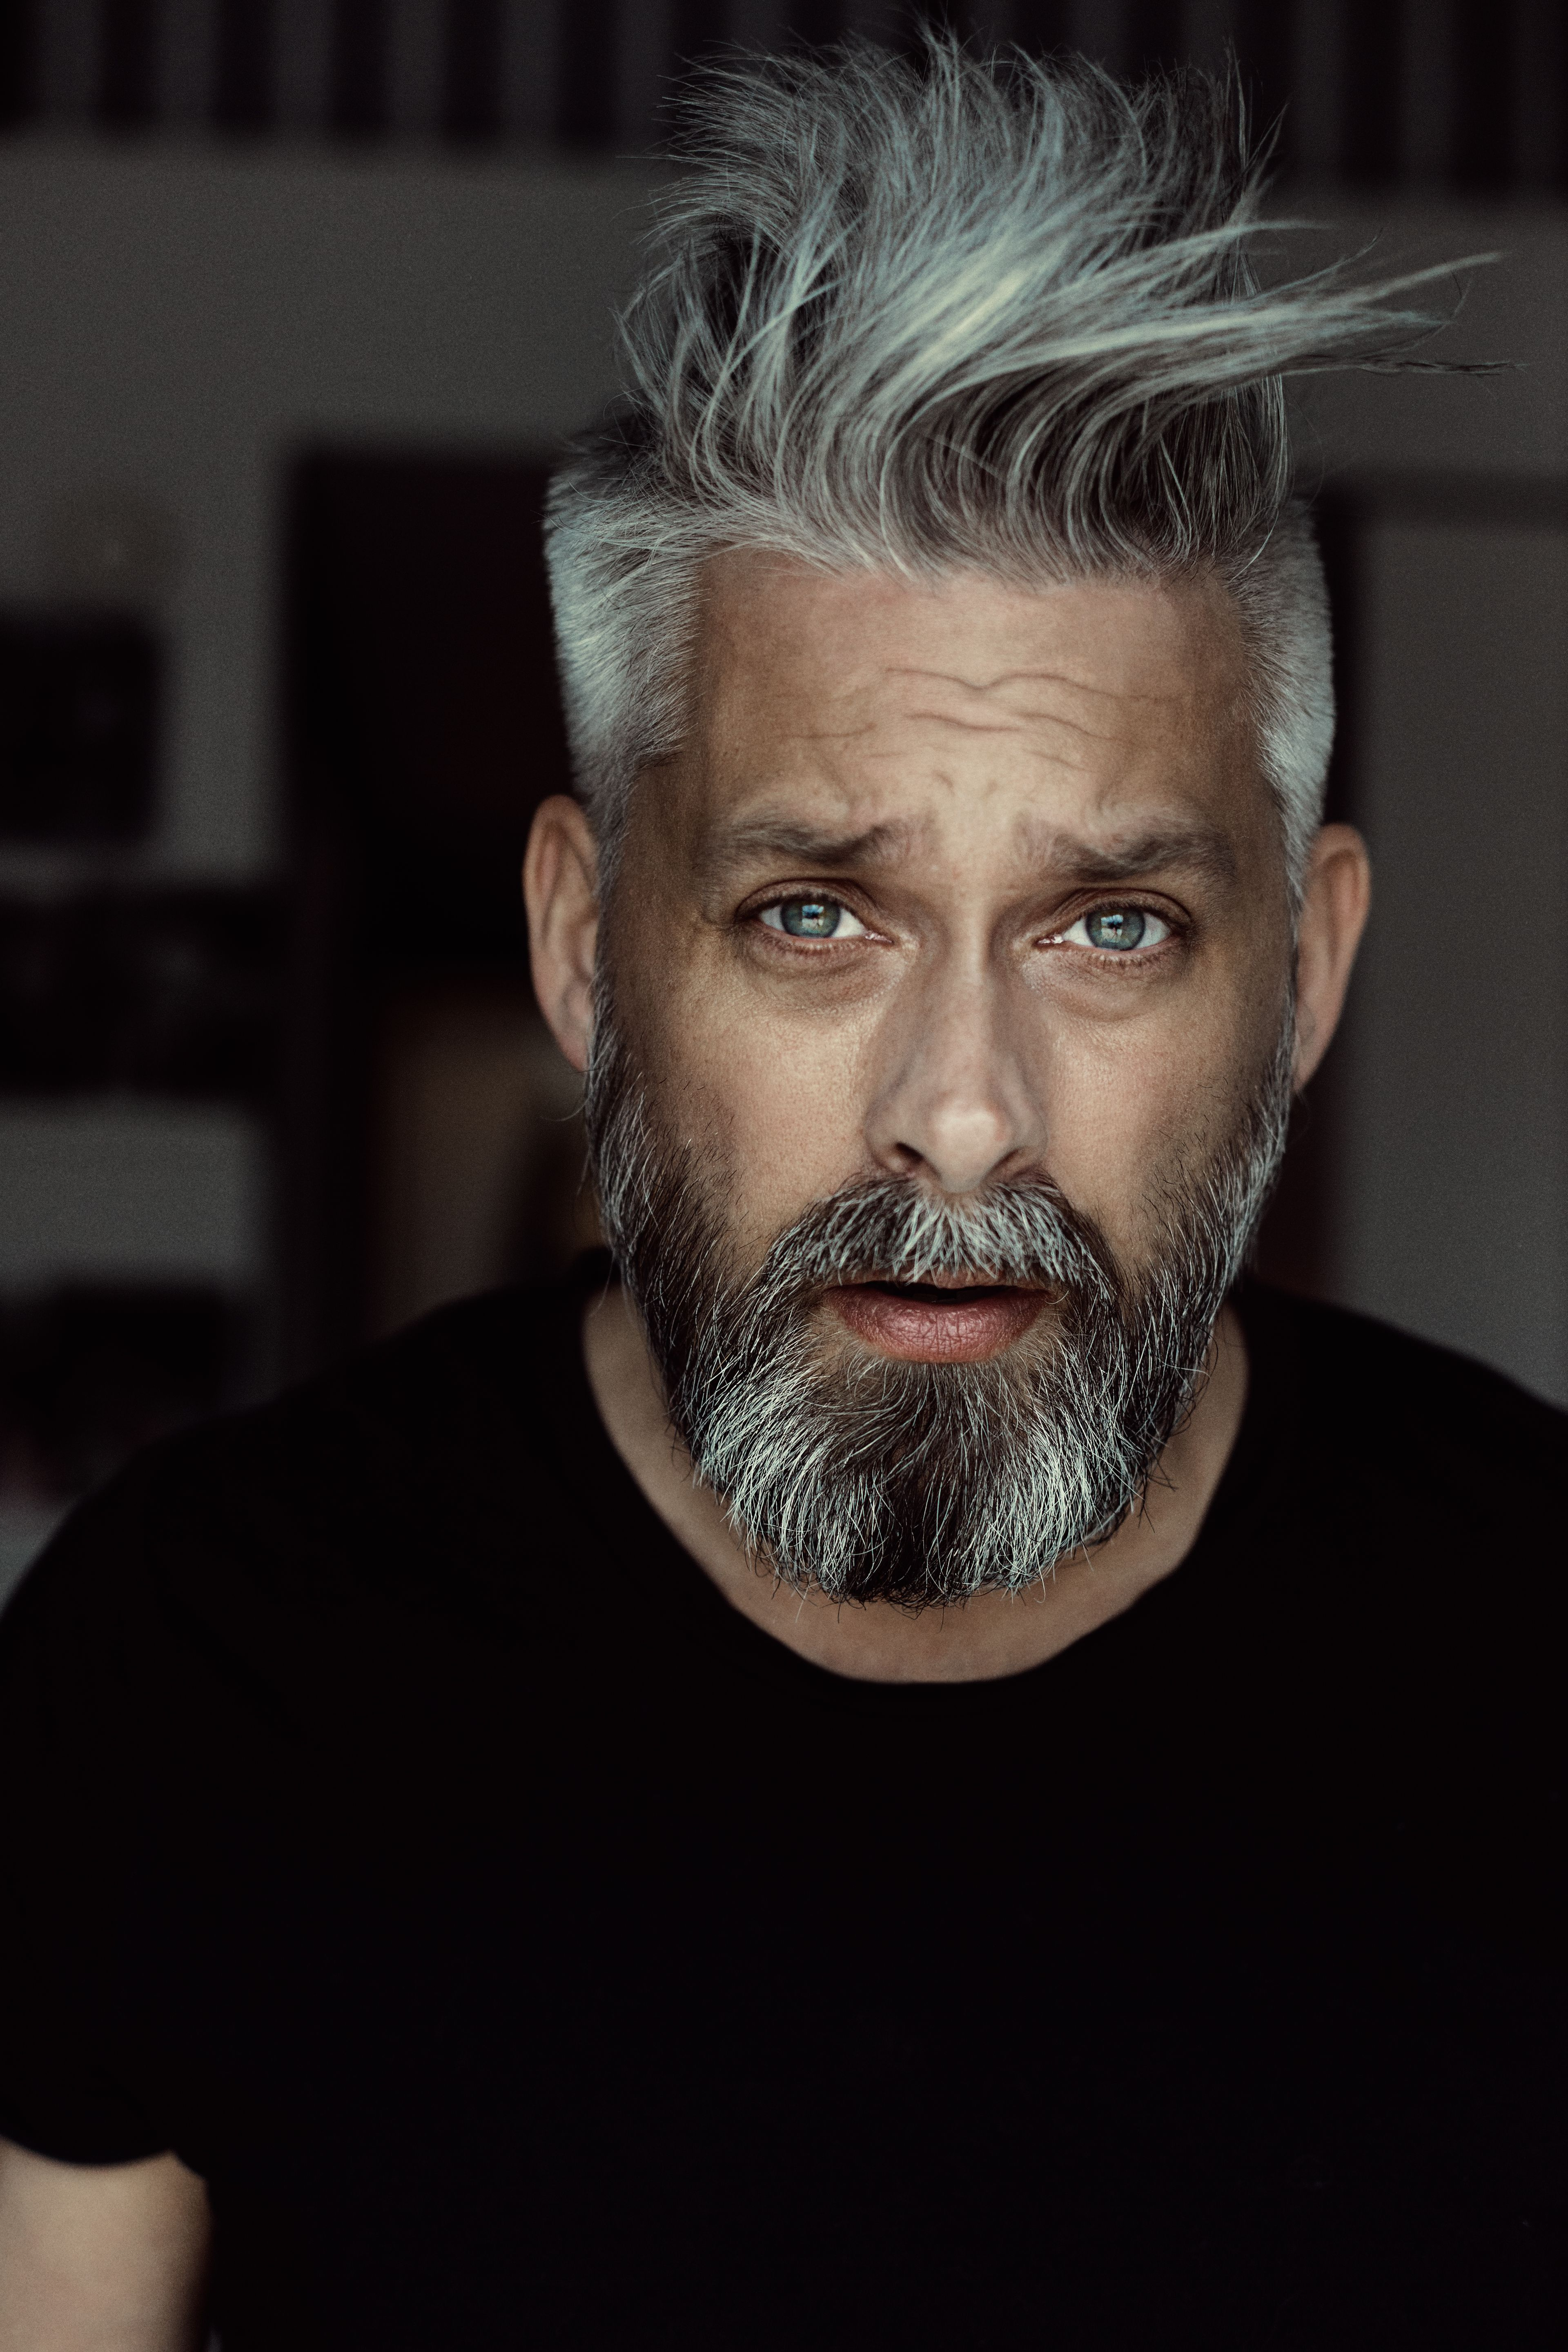 Model swede grey hair 40 beard man male manly fit over 40